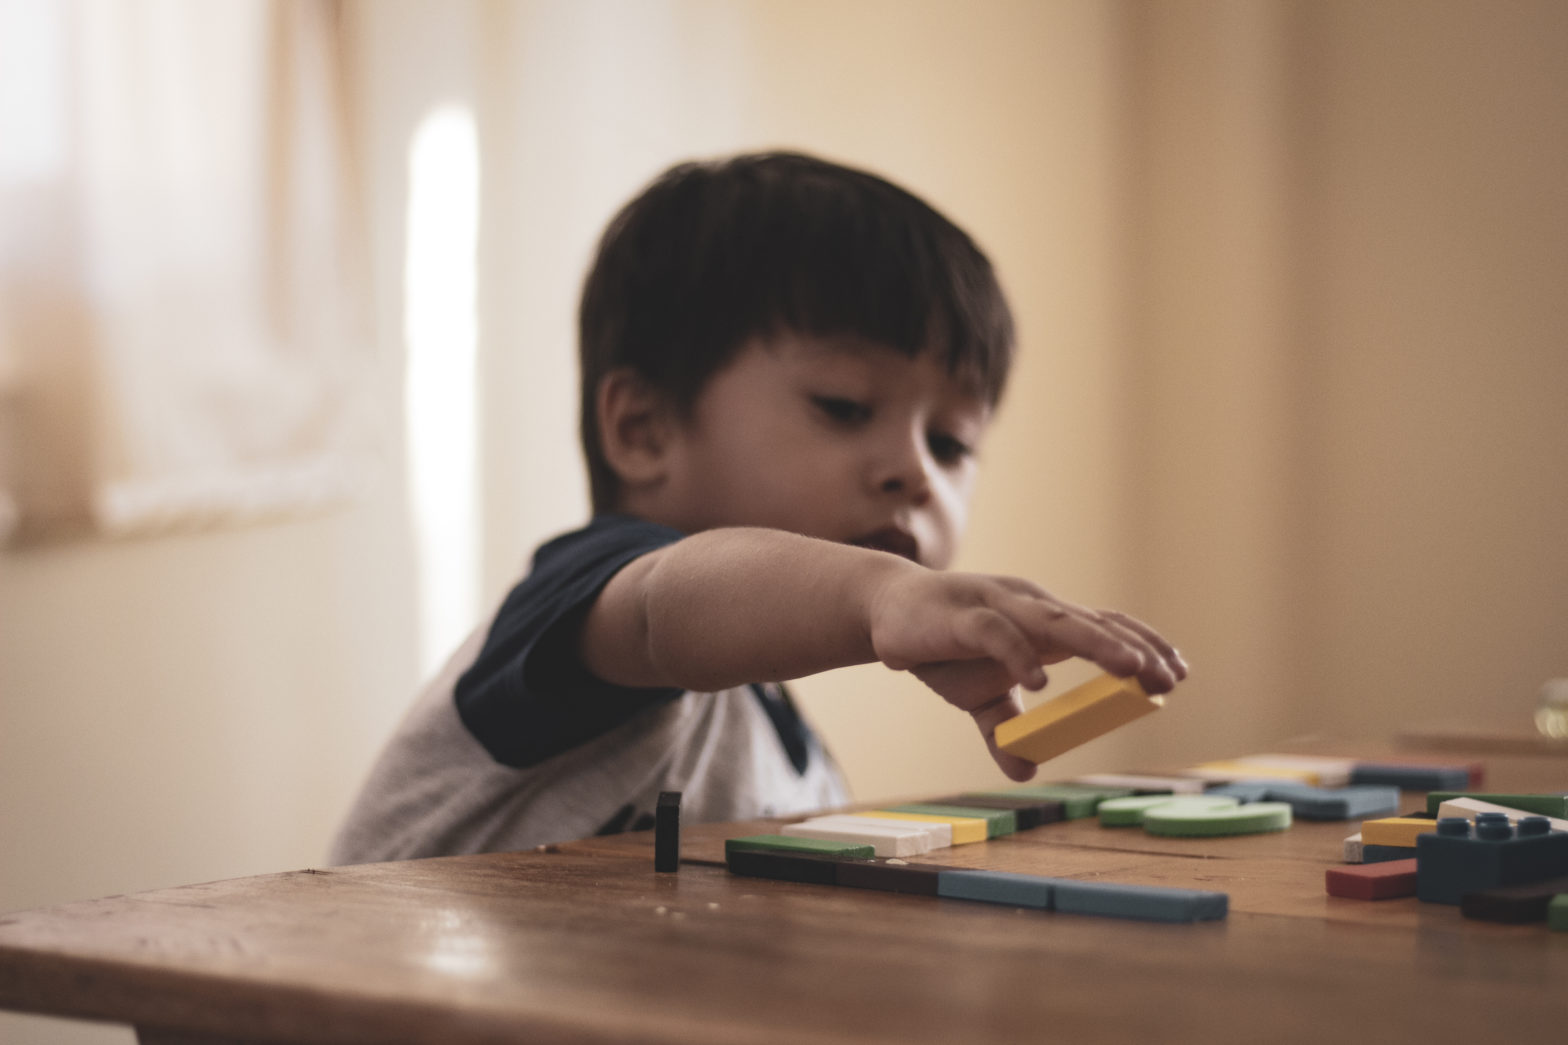 Little boy placing puzzle pieces together at a childcare center.